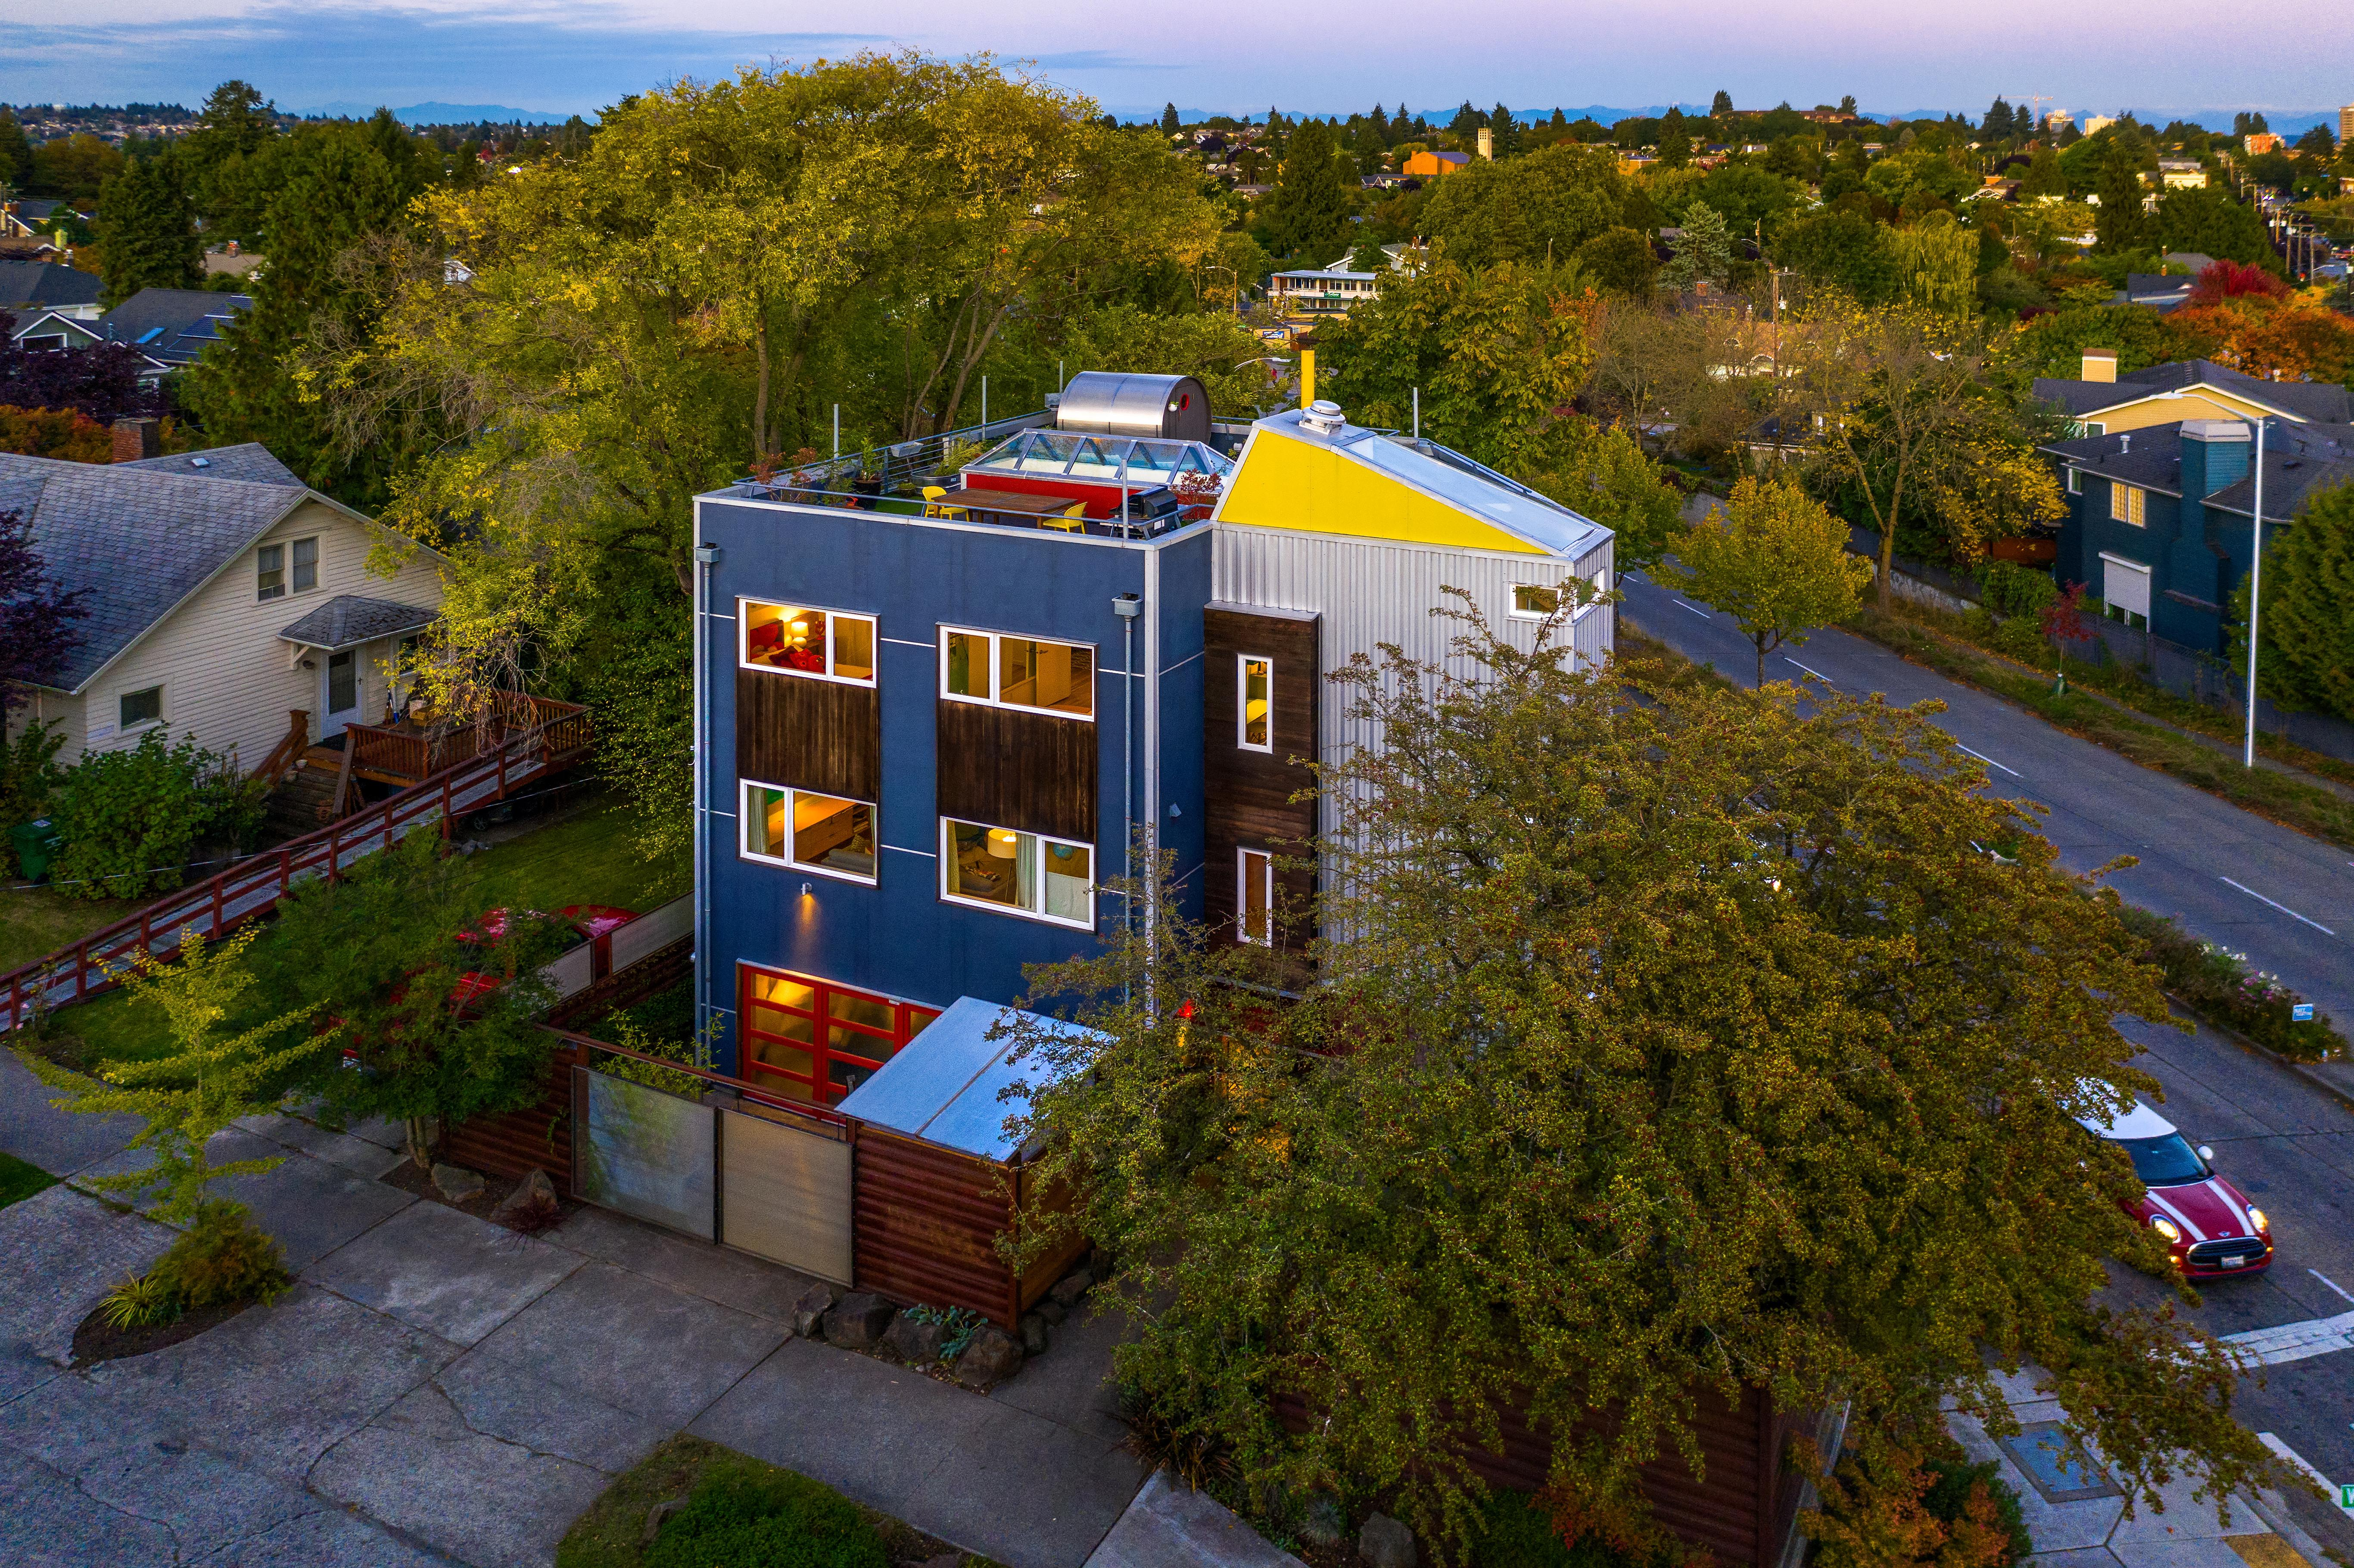 "Luxury homes are a dime a dozen in Seattle but the thing that sold us on this one - was the sauna on the roof.{&nbsp;}<a  href=""https://www.windermere.com/listing/WA/Seattle/4606-Whitman-Ave-N-98103/100922959"" target=""_blank"" title=""https://www.windermere.com/listing/WA/Seattle/4606-Whitman-Ave-N-98103/100922959"">Listed by Windermere</a>, this Wallingford home is ""likely the inspiration for what has now become the ubiquitous modern box, the term often imitated yet never duplicated."" The three level home has south-facing views sweeping across Lake Union, to downtown, Elliot Bay and Rainier. Also - the ROOFTOP HOT TUB AND SAUNA. The 2,700 square foot home has 3 beds, 4 baths and is listed for $1,295,000. (Image courtesy of Windermere)"